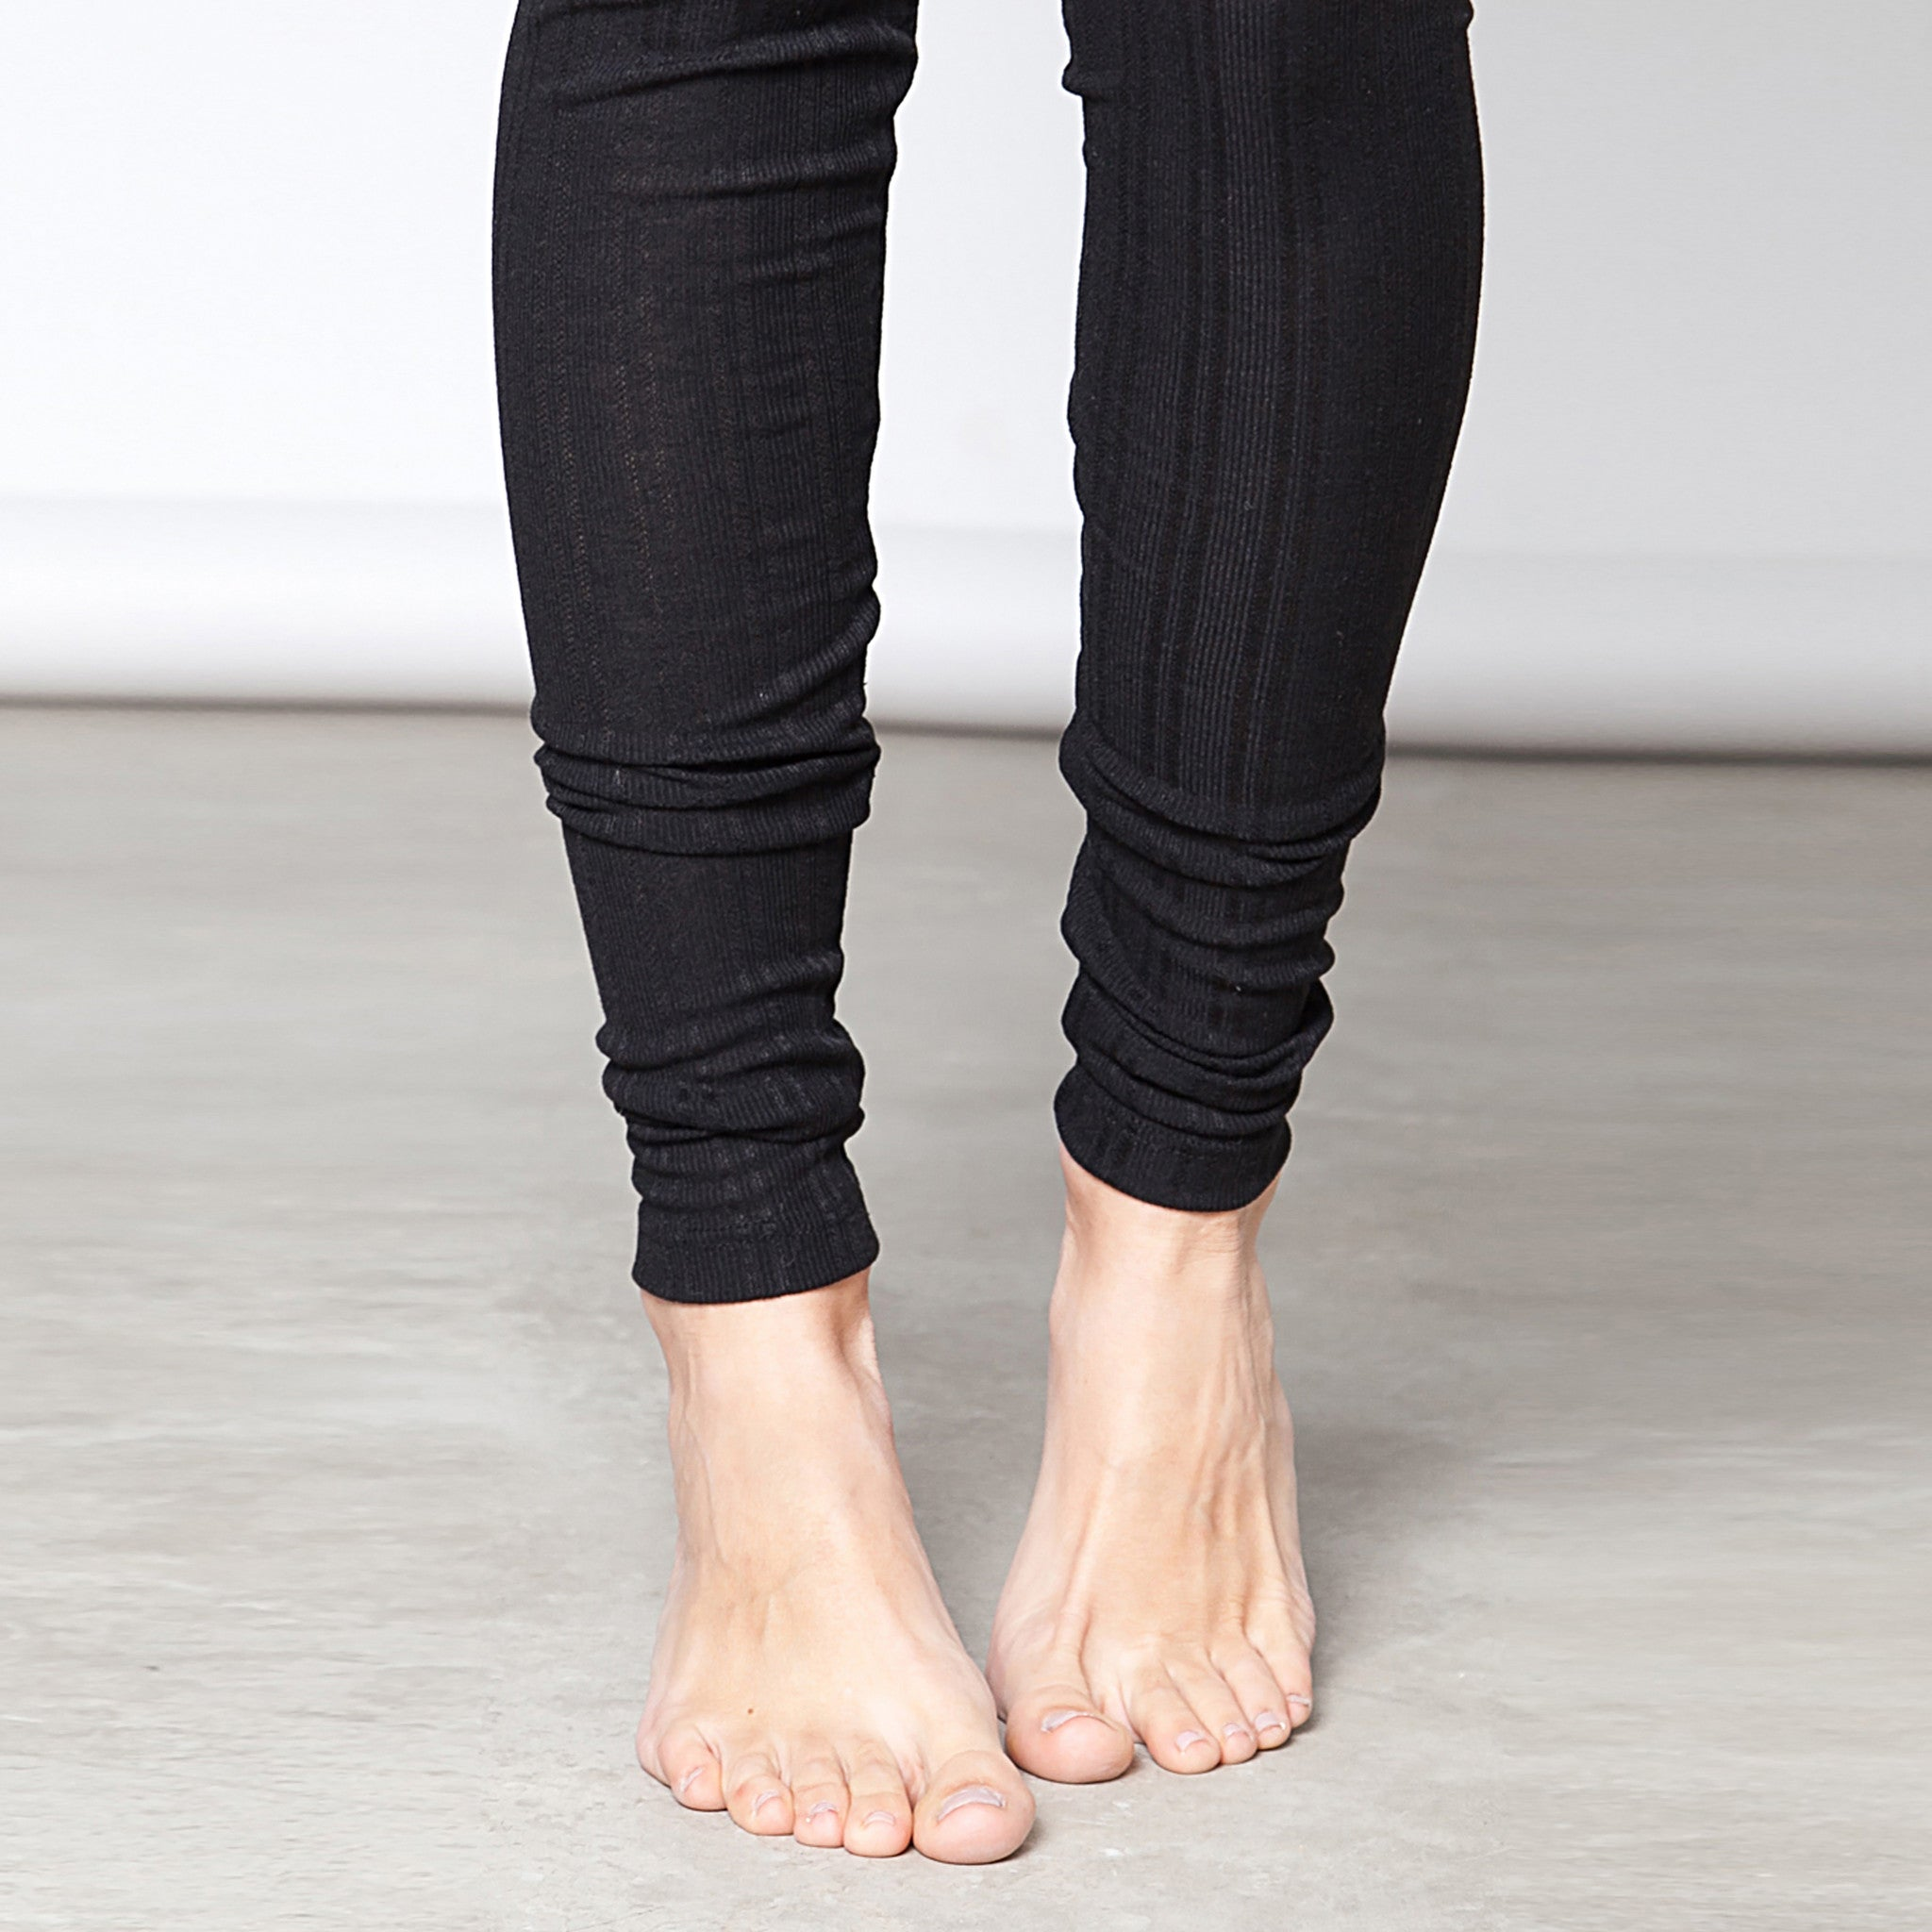 Cotton pointelle knit leggings - DuendeFashion  - 6